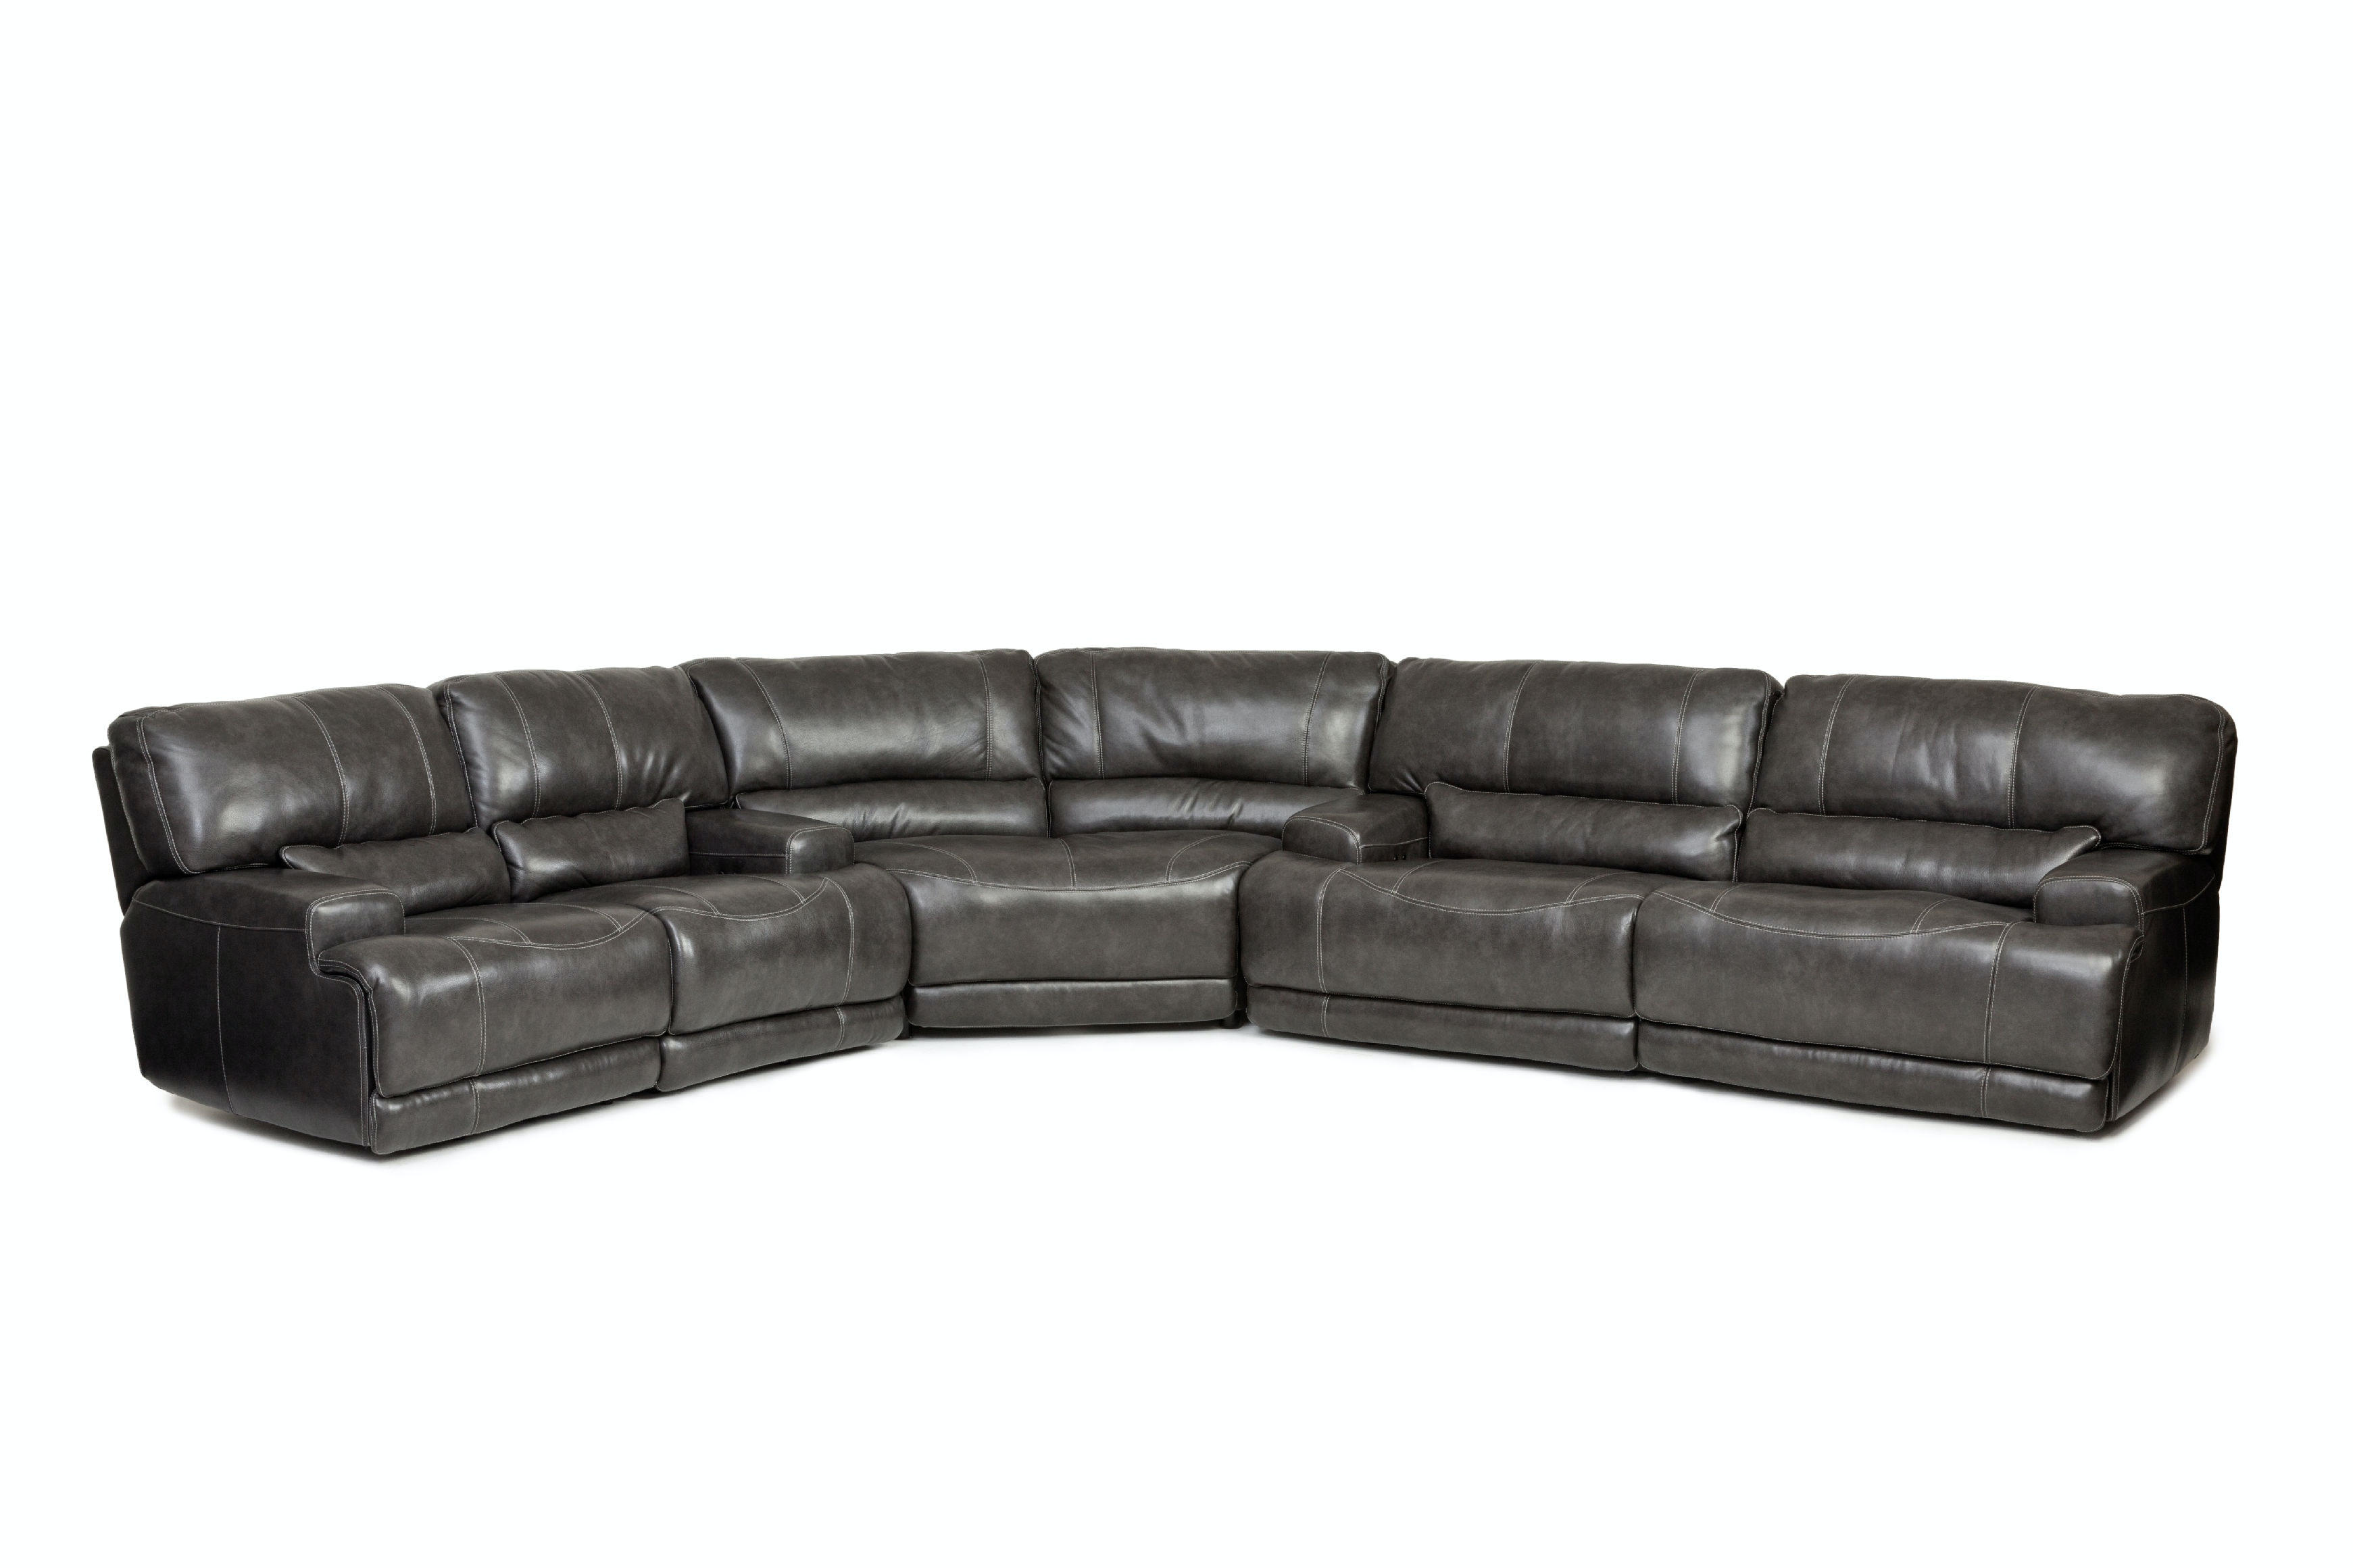 St&ede Power Motion Leather Reclining Loveseat ST422615  sc 1 st  Star Furniture & Living Room Stampede Power Motion Leather Reclining Loveseat islam-shia.org